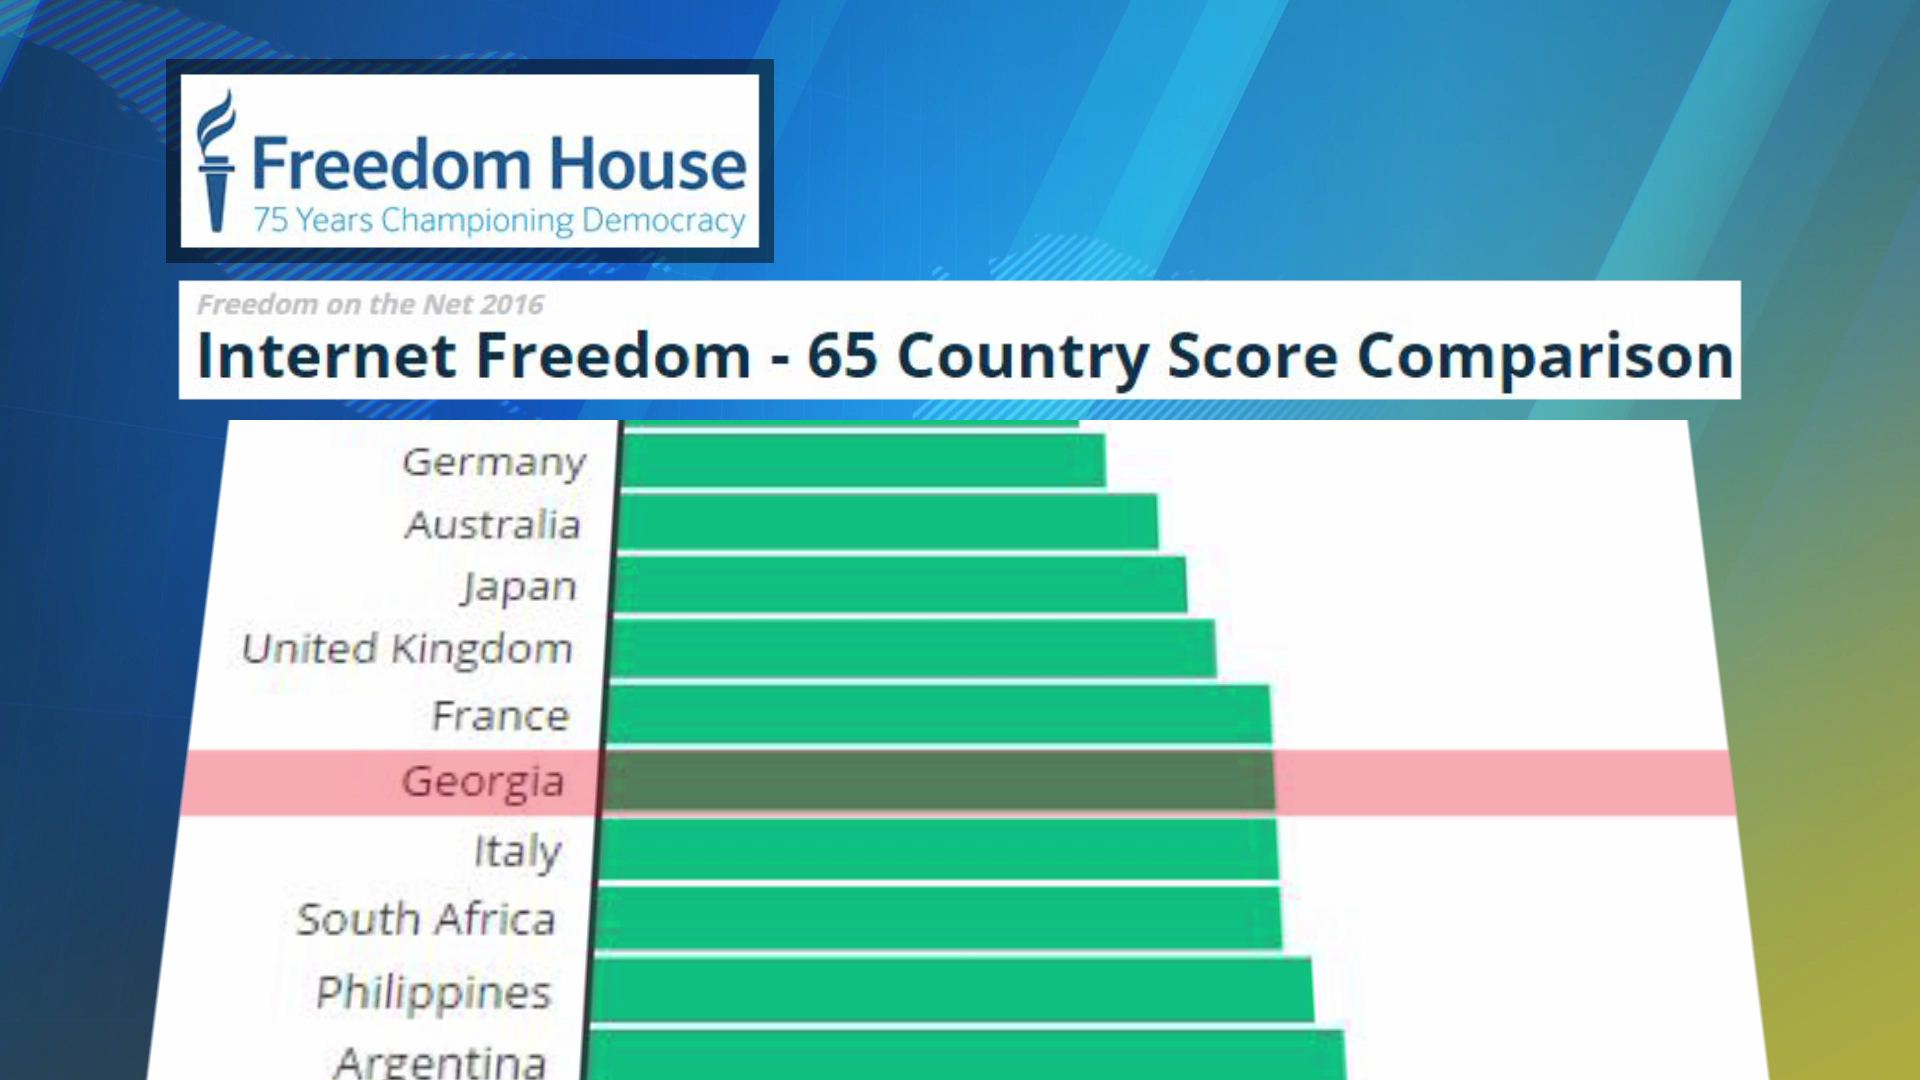 Georgia enters top ten in Internet Freedom Ranking - AJARATV